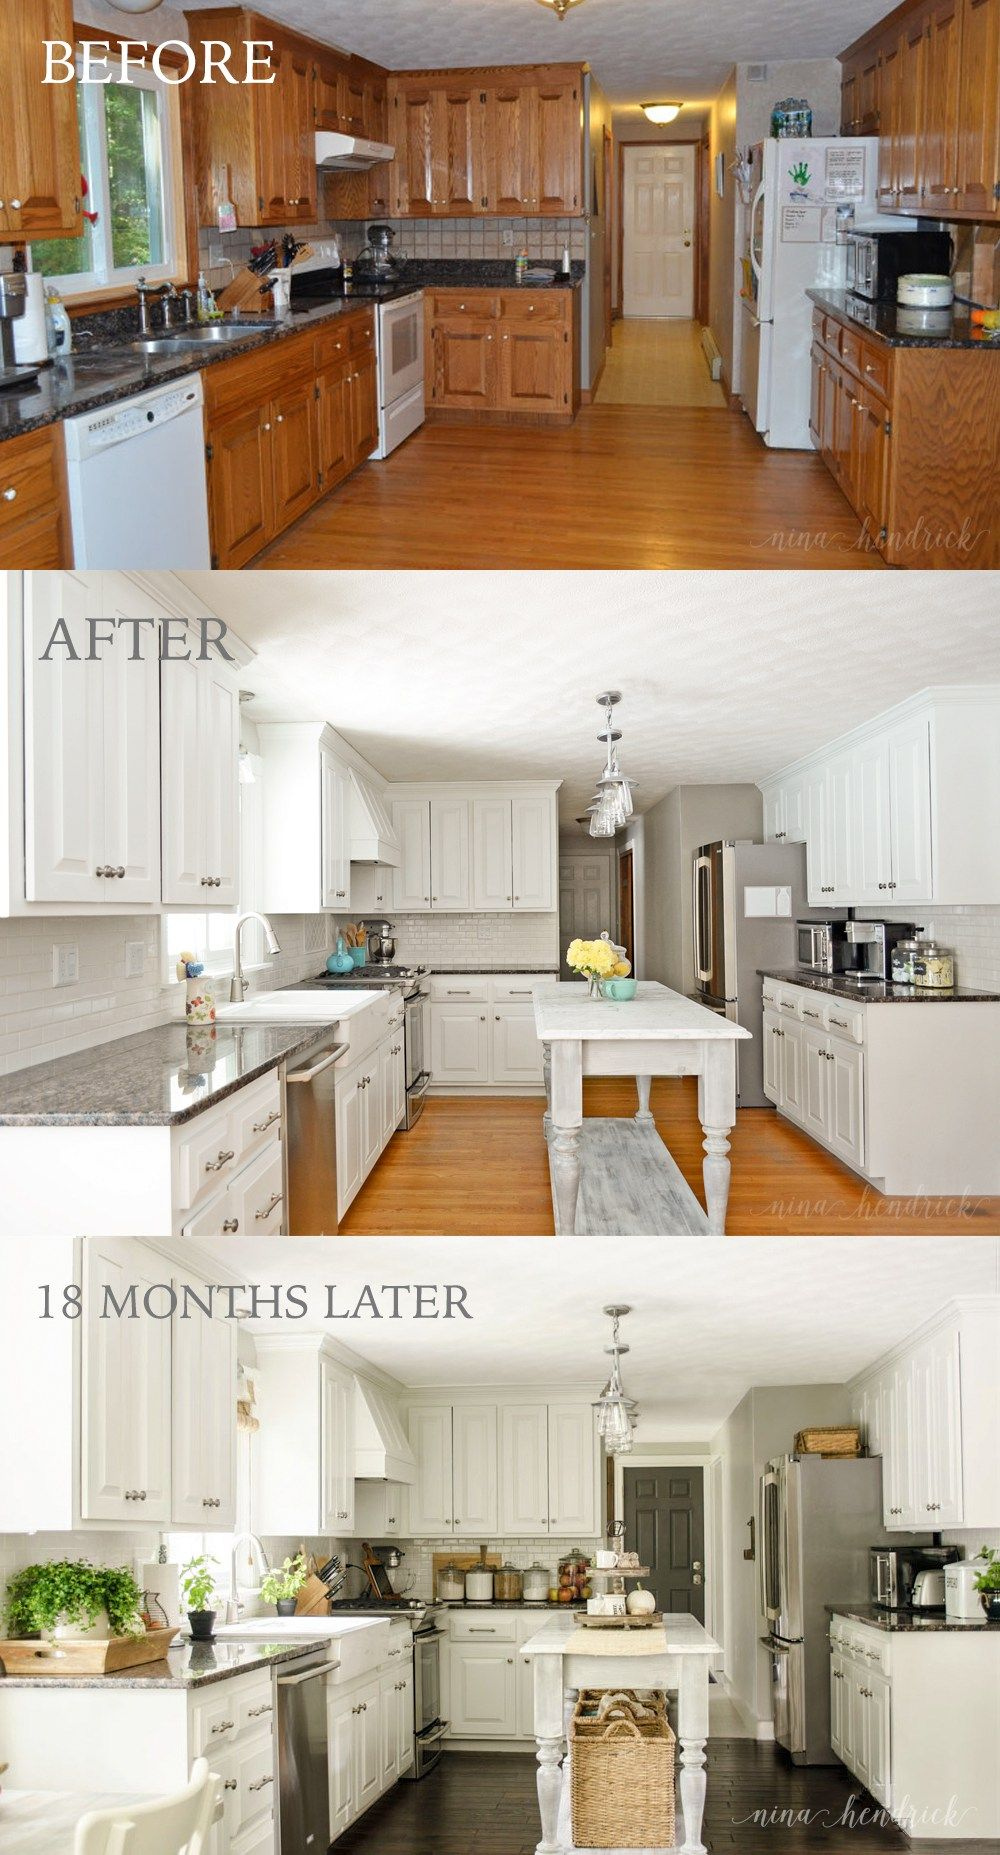 How to Paint Oak Cabinets and Hide the Grain | Kitchen Design ... Paint Kitchen Cabinets on paint kitchen faucet, painting cabinets, paint wooden stairs, painting kitchen cabinets, refinishing kitchen cabinets, paint cultured marble, cheap kitchen cabinets, paint kitchen tables, paint carpet cabinets, paint kitchen floors, white kitchen cabinets, kitchen cabinet doors, best colors to paint cabinets, paint for cabinets, paint pantry cabinets, best kitchen cabinets, oak kitchen cabinets, paint garage cabinets, paint upper cabinets, paint butcher block countertops, paint black cabinets, paint kitchen before after, wholesale kitchen cabinets, corner kitchen cabinets, painted kitchen cabinets, paint bedroom set, paint appliances, buy kitchen cabinets, updating kitchen cabinets, bathroom paint, paint knotty pine cabinets, paint dining room sets, new kitchen cabinets, paint interior cabinets, paint wooden frames,